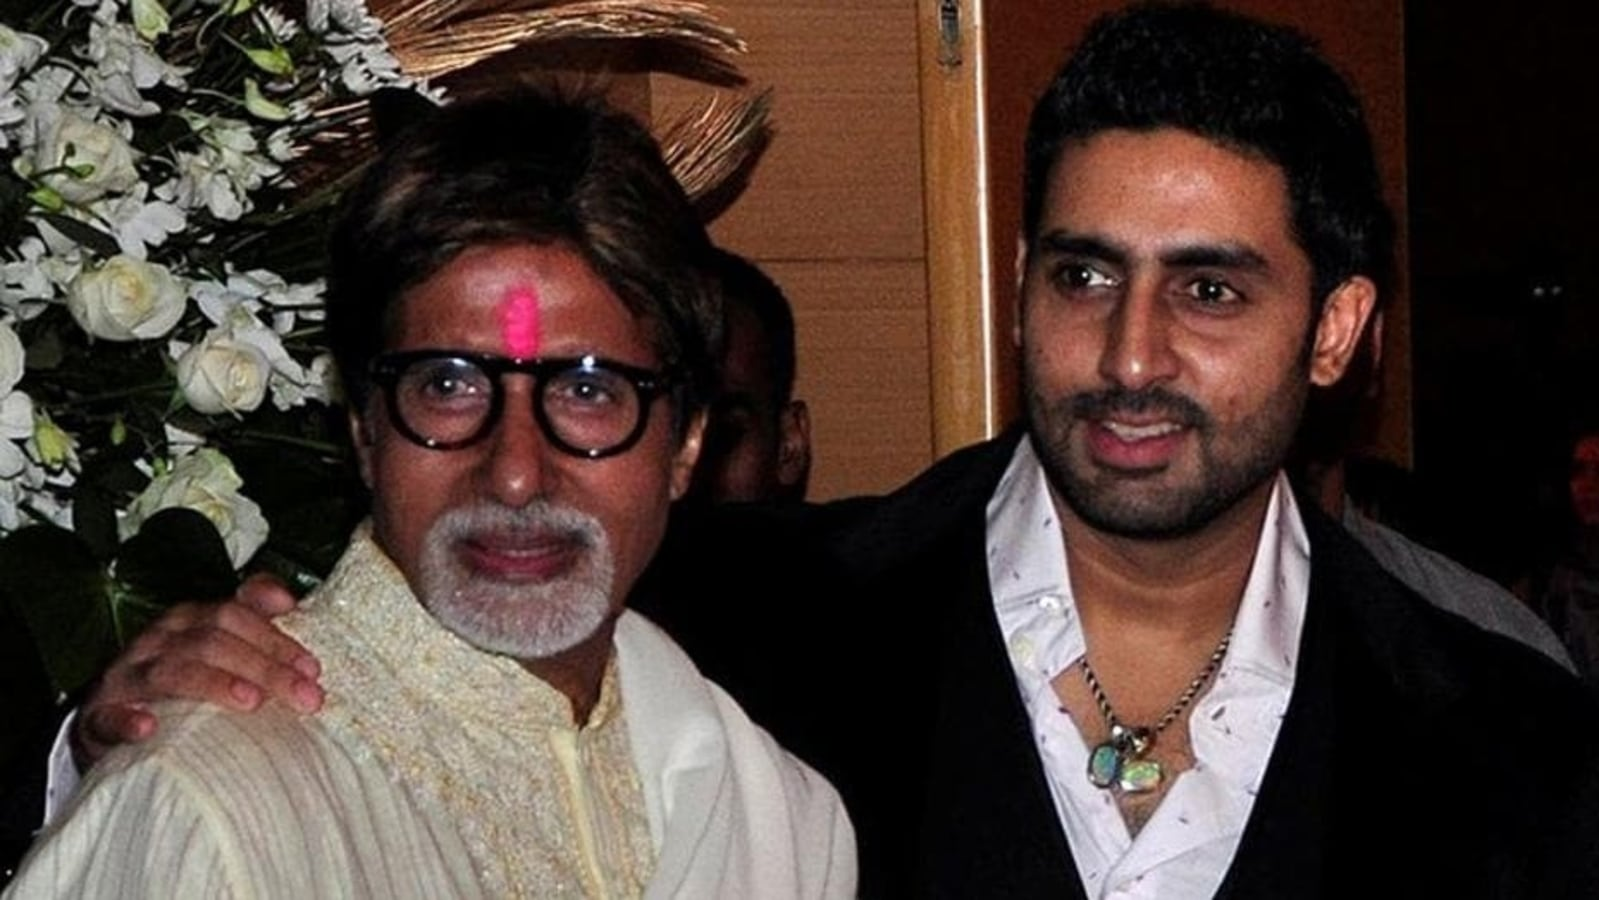 Abhishek Bachchan remembers Amitabh asking Yash Chopra for a job during the financial crunch, when 'nothing worked out'